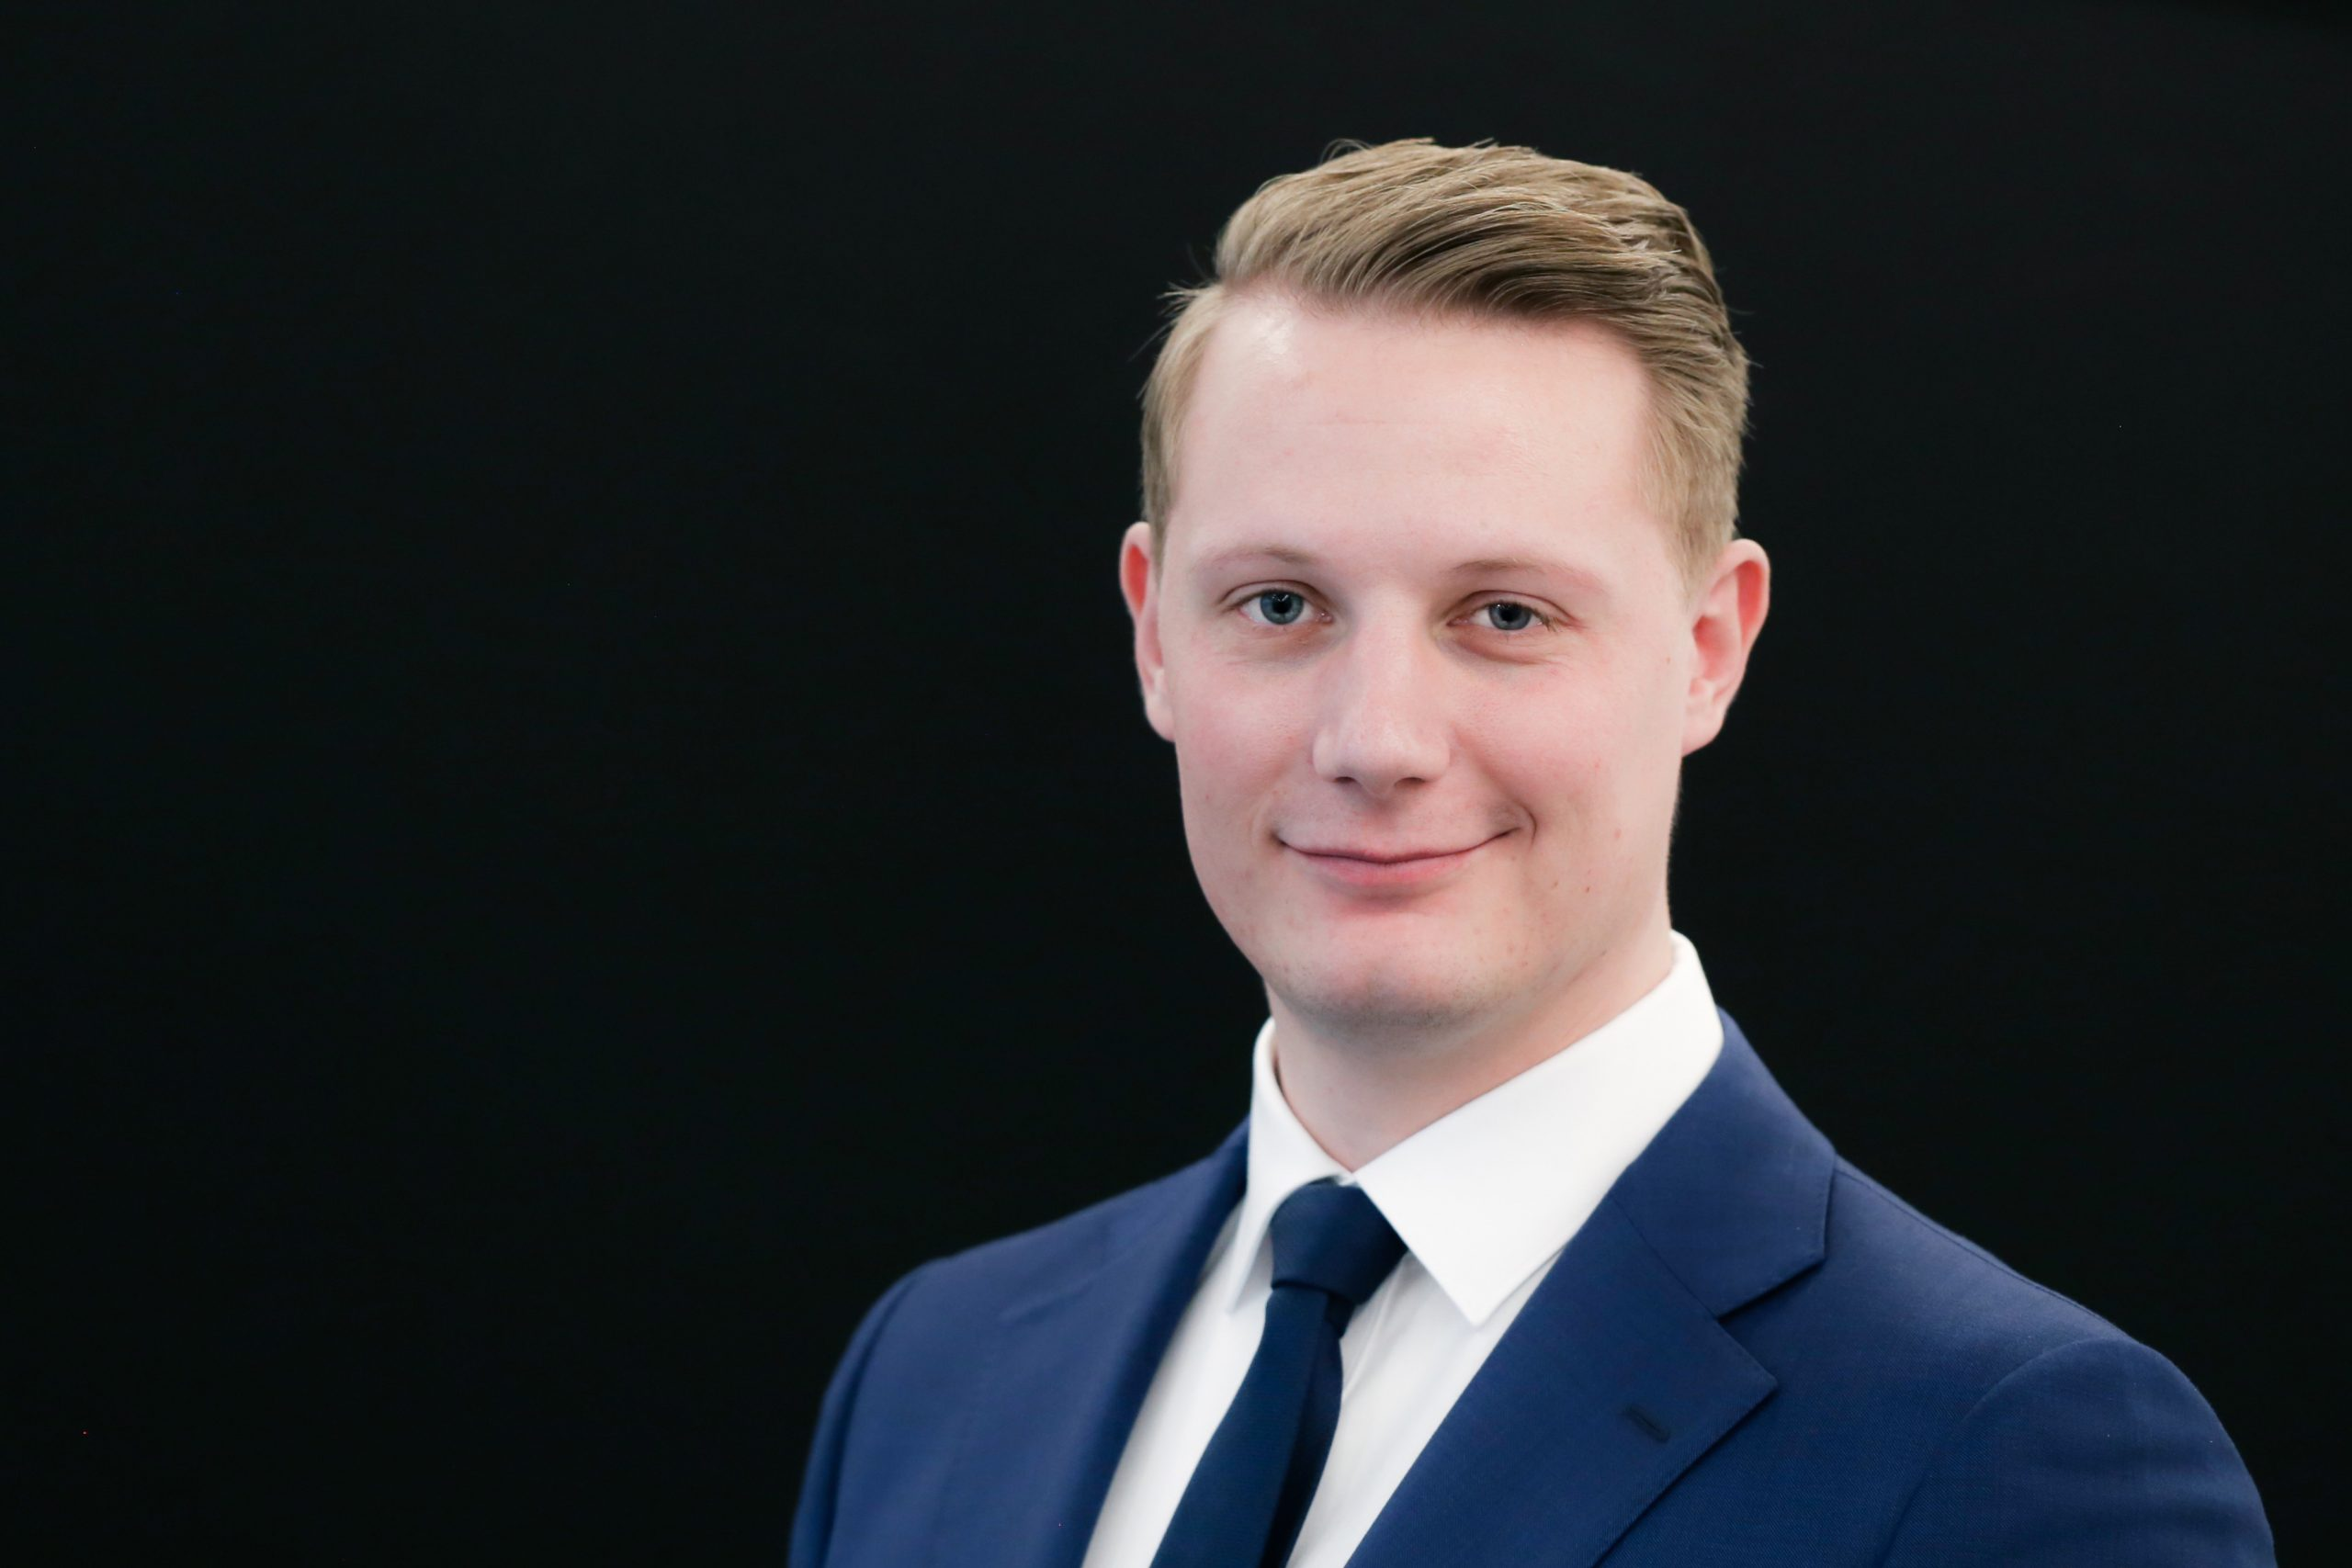 EGYM UK APPOINTS CUSTOMER SUCCESS MANAGER